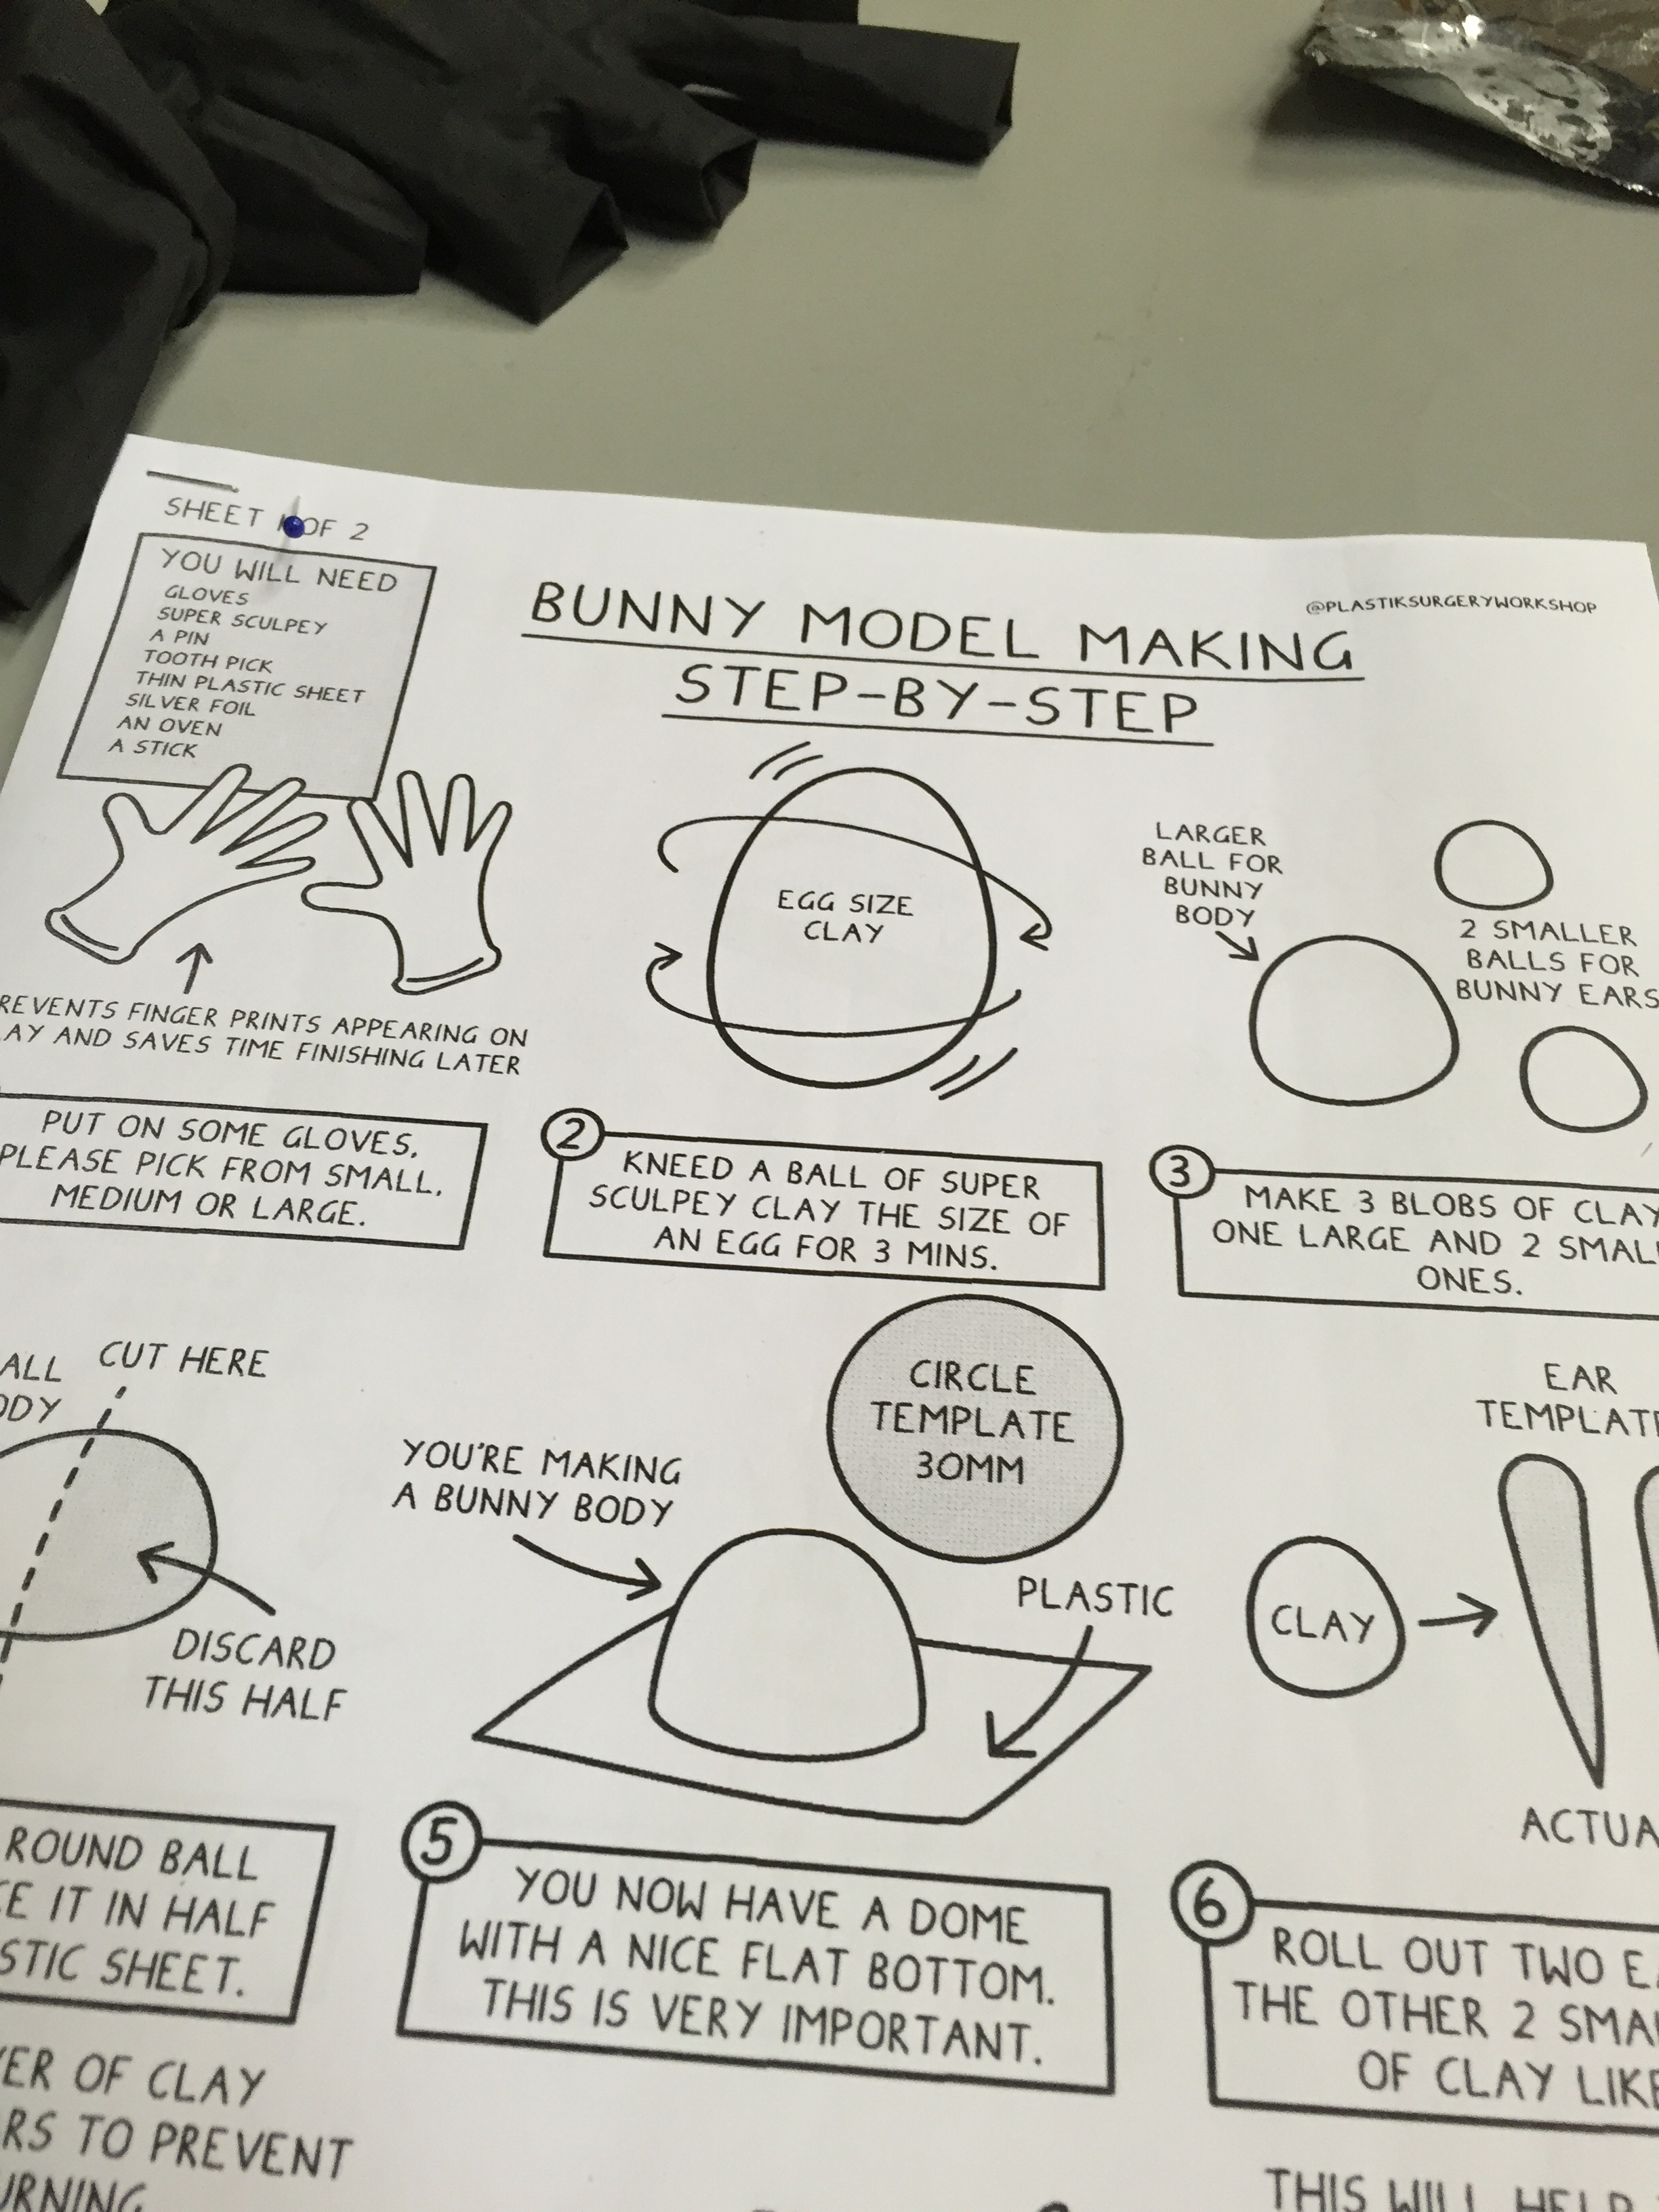 Bunny model guide